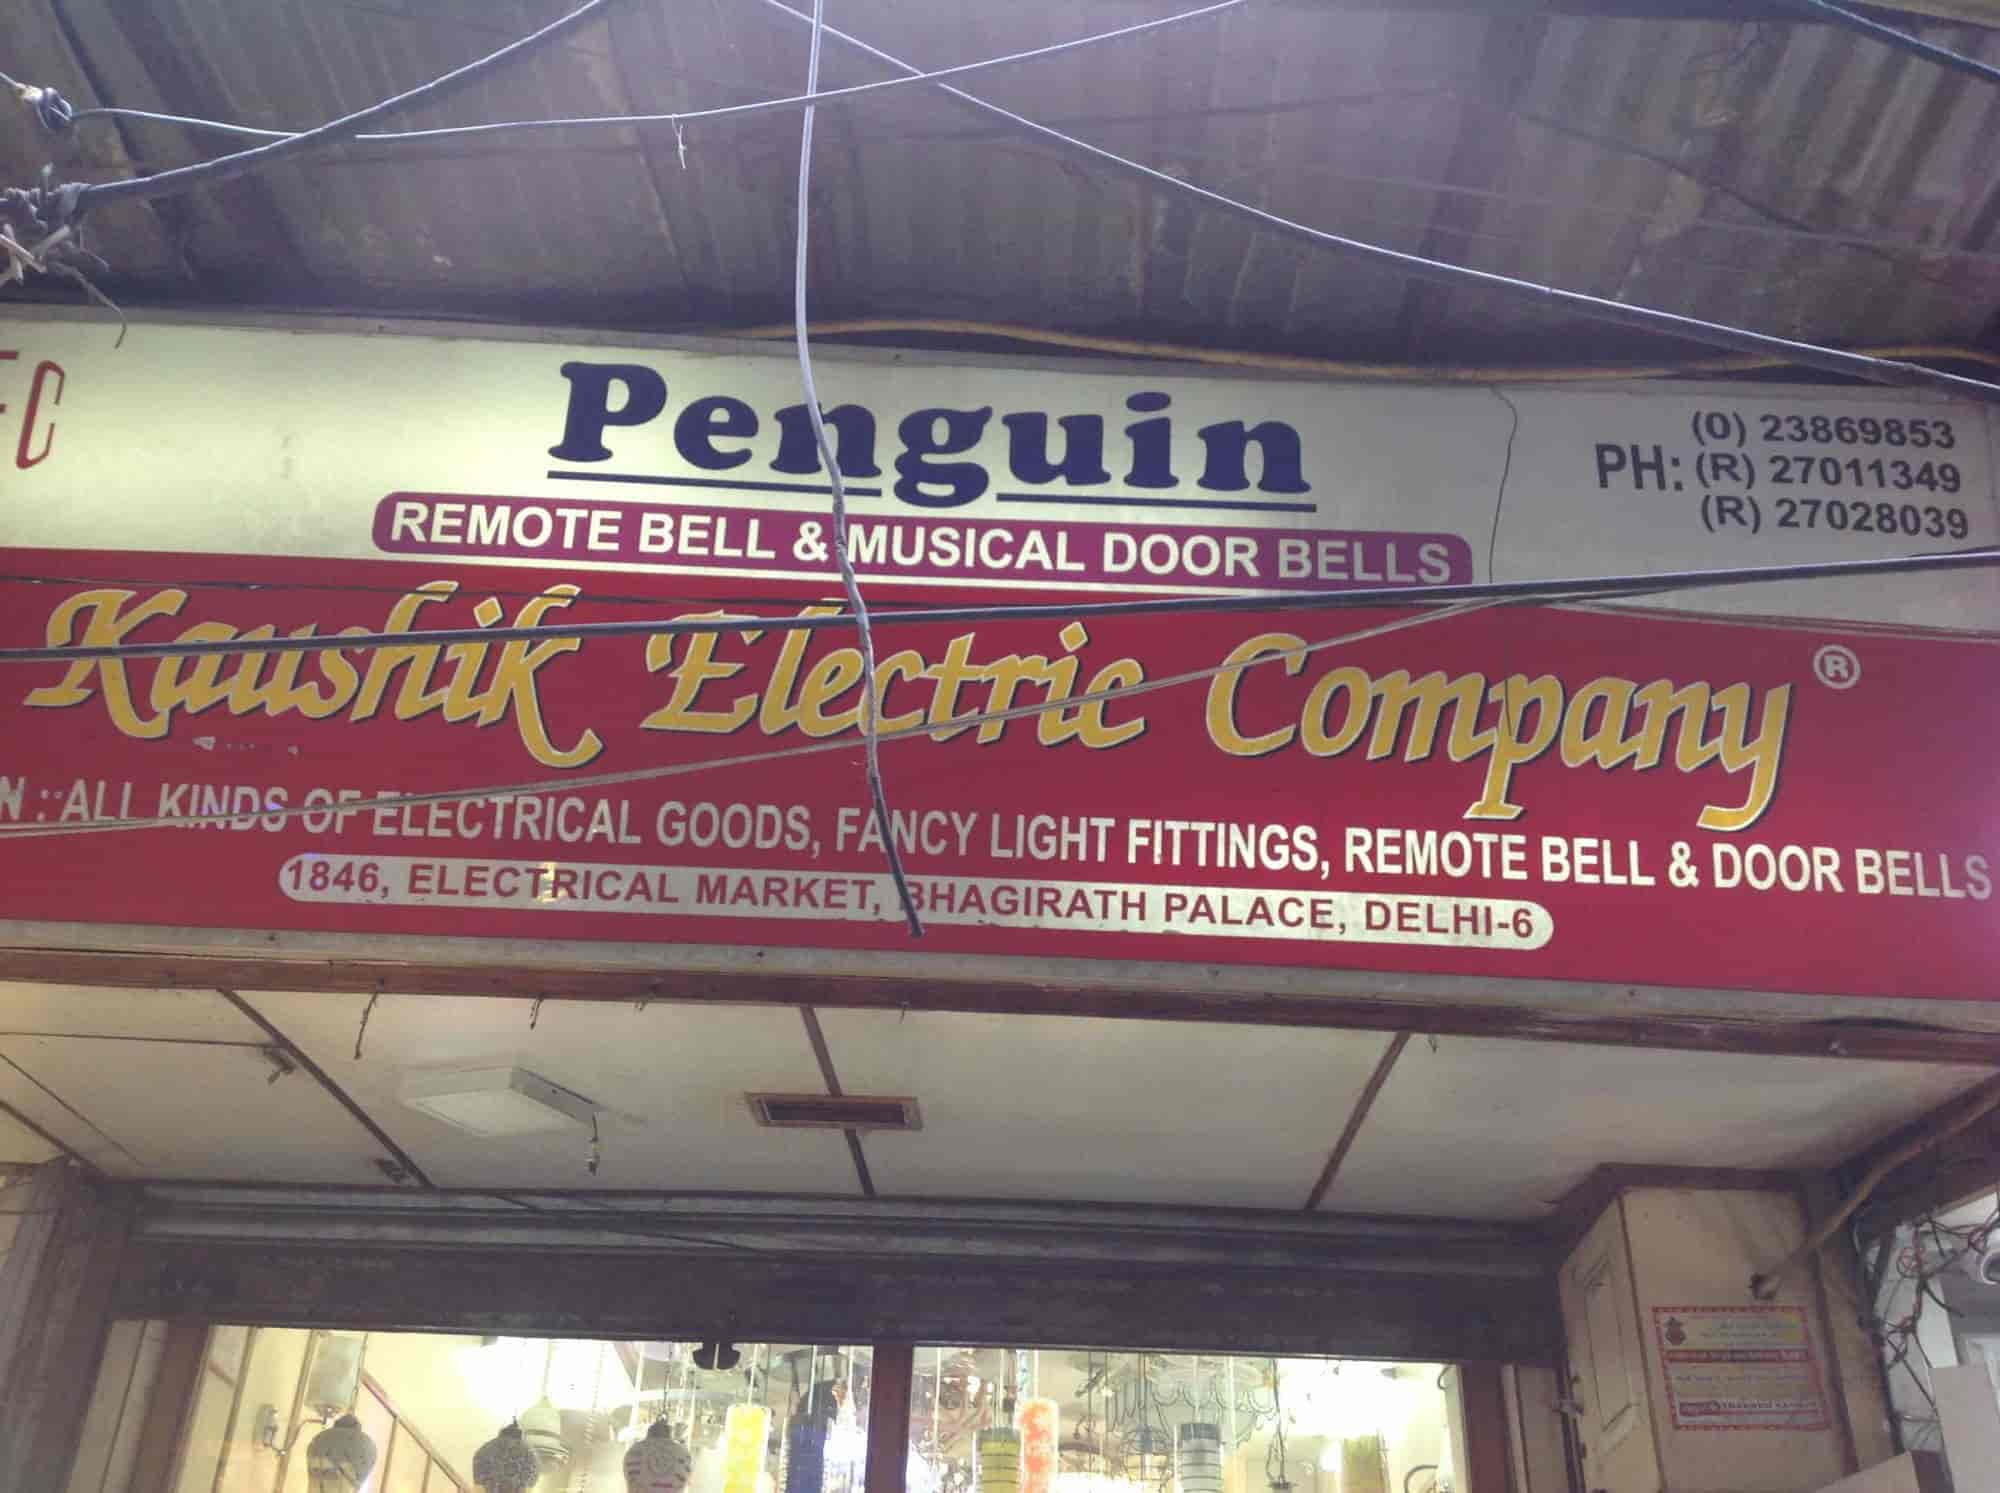 Kaushik Electric Company, Bhagirath Palace - LED Light